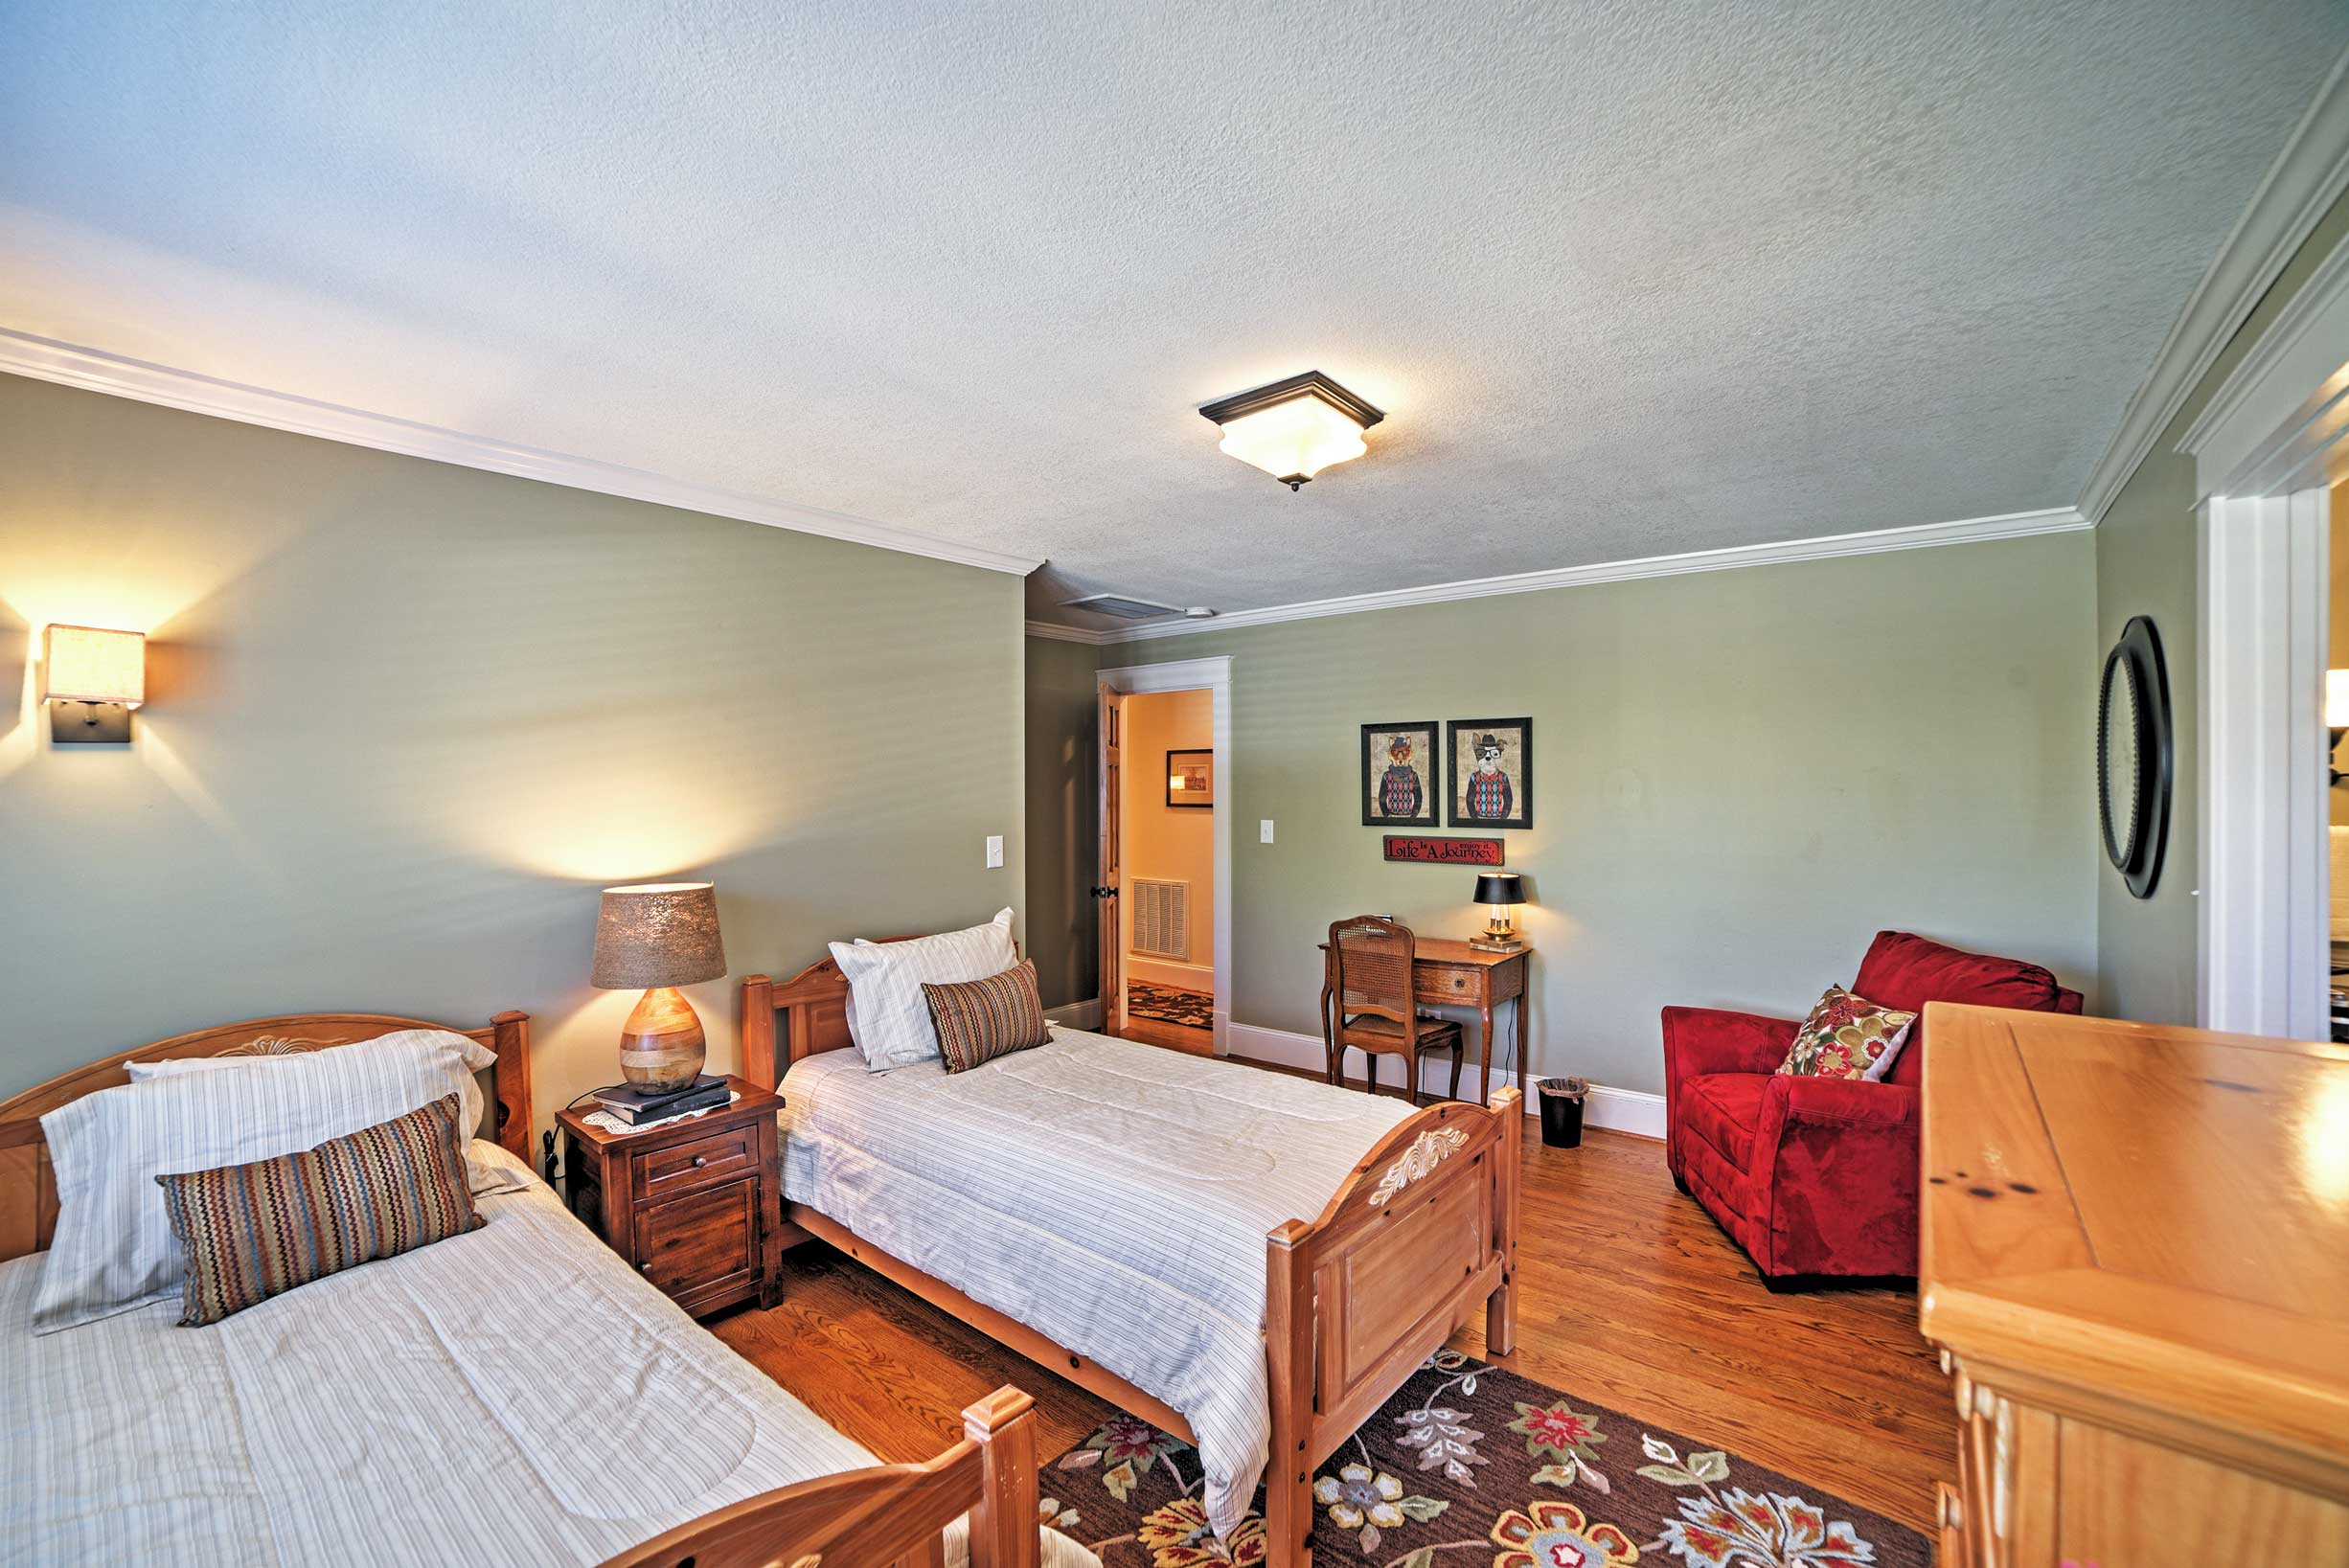 Book this magnificent Cleveland vacation rental house for everlasting memories!